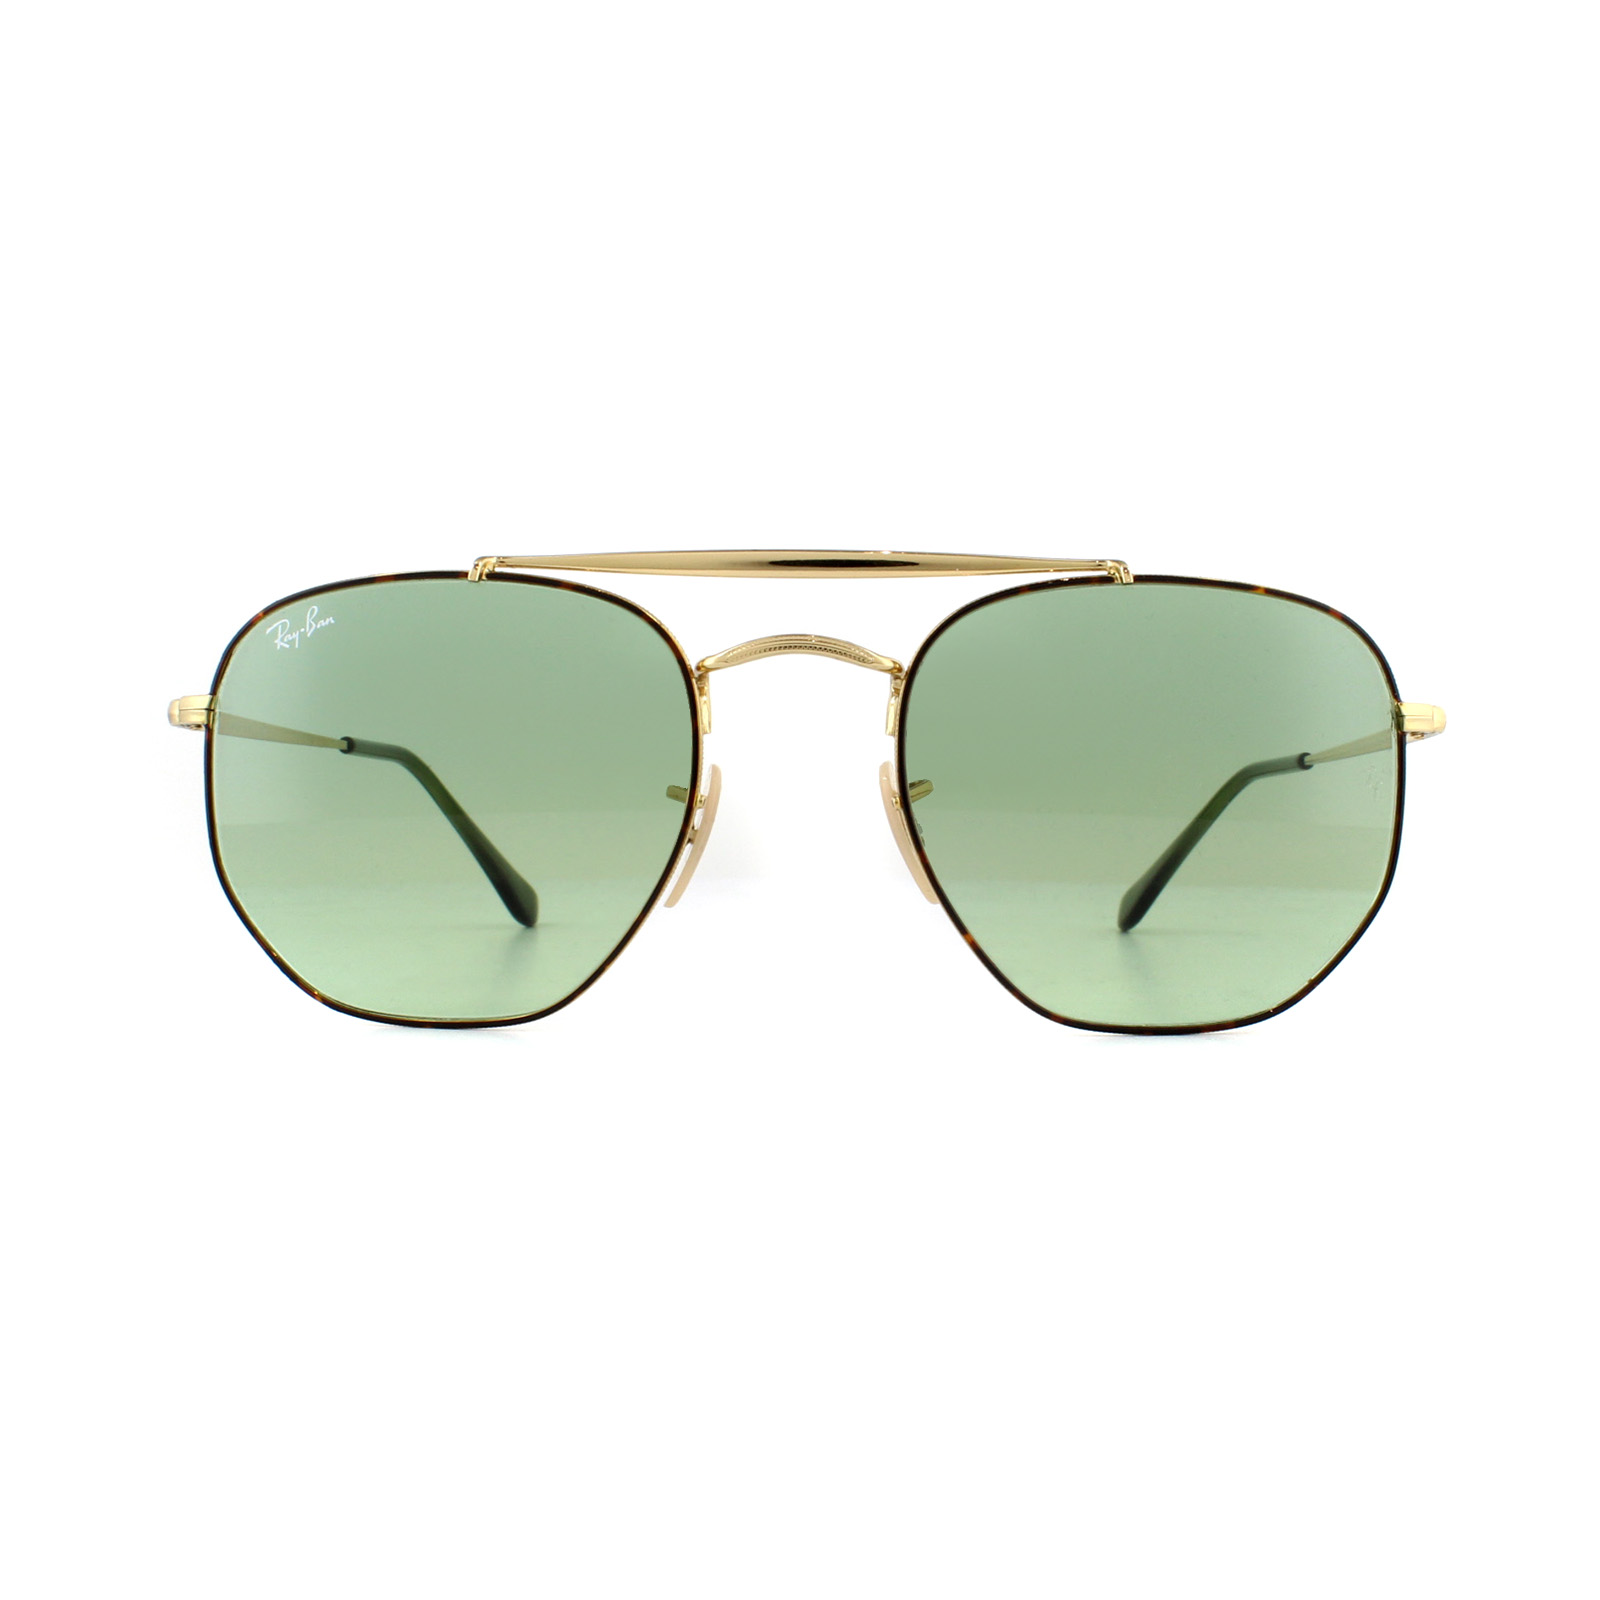 04d59d75d3 Sentinel Ray-Ban Sunglasses Marshal 3648 91034M Tortoise Gold Green Gradient